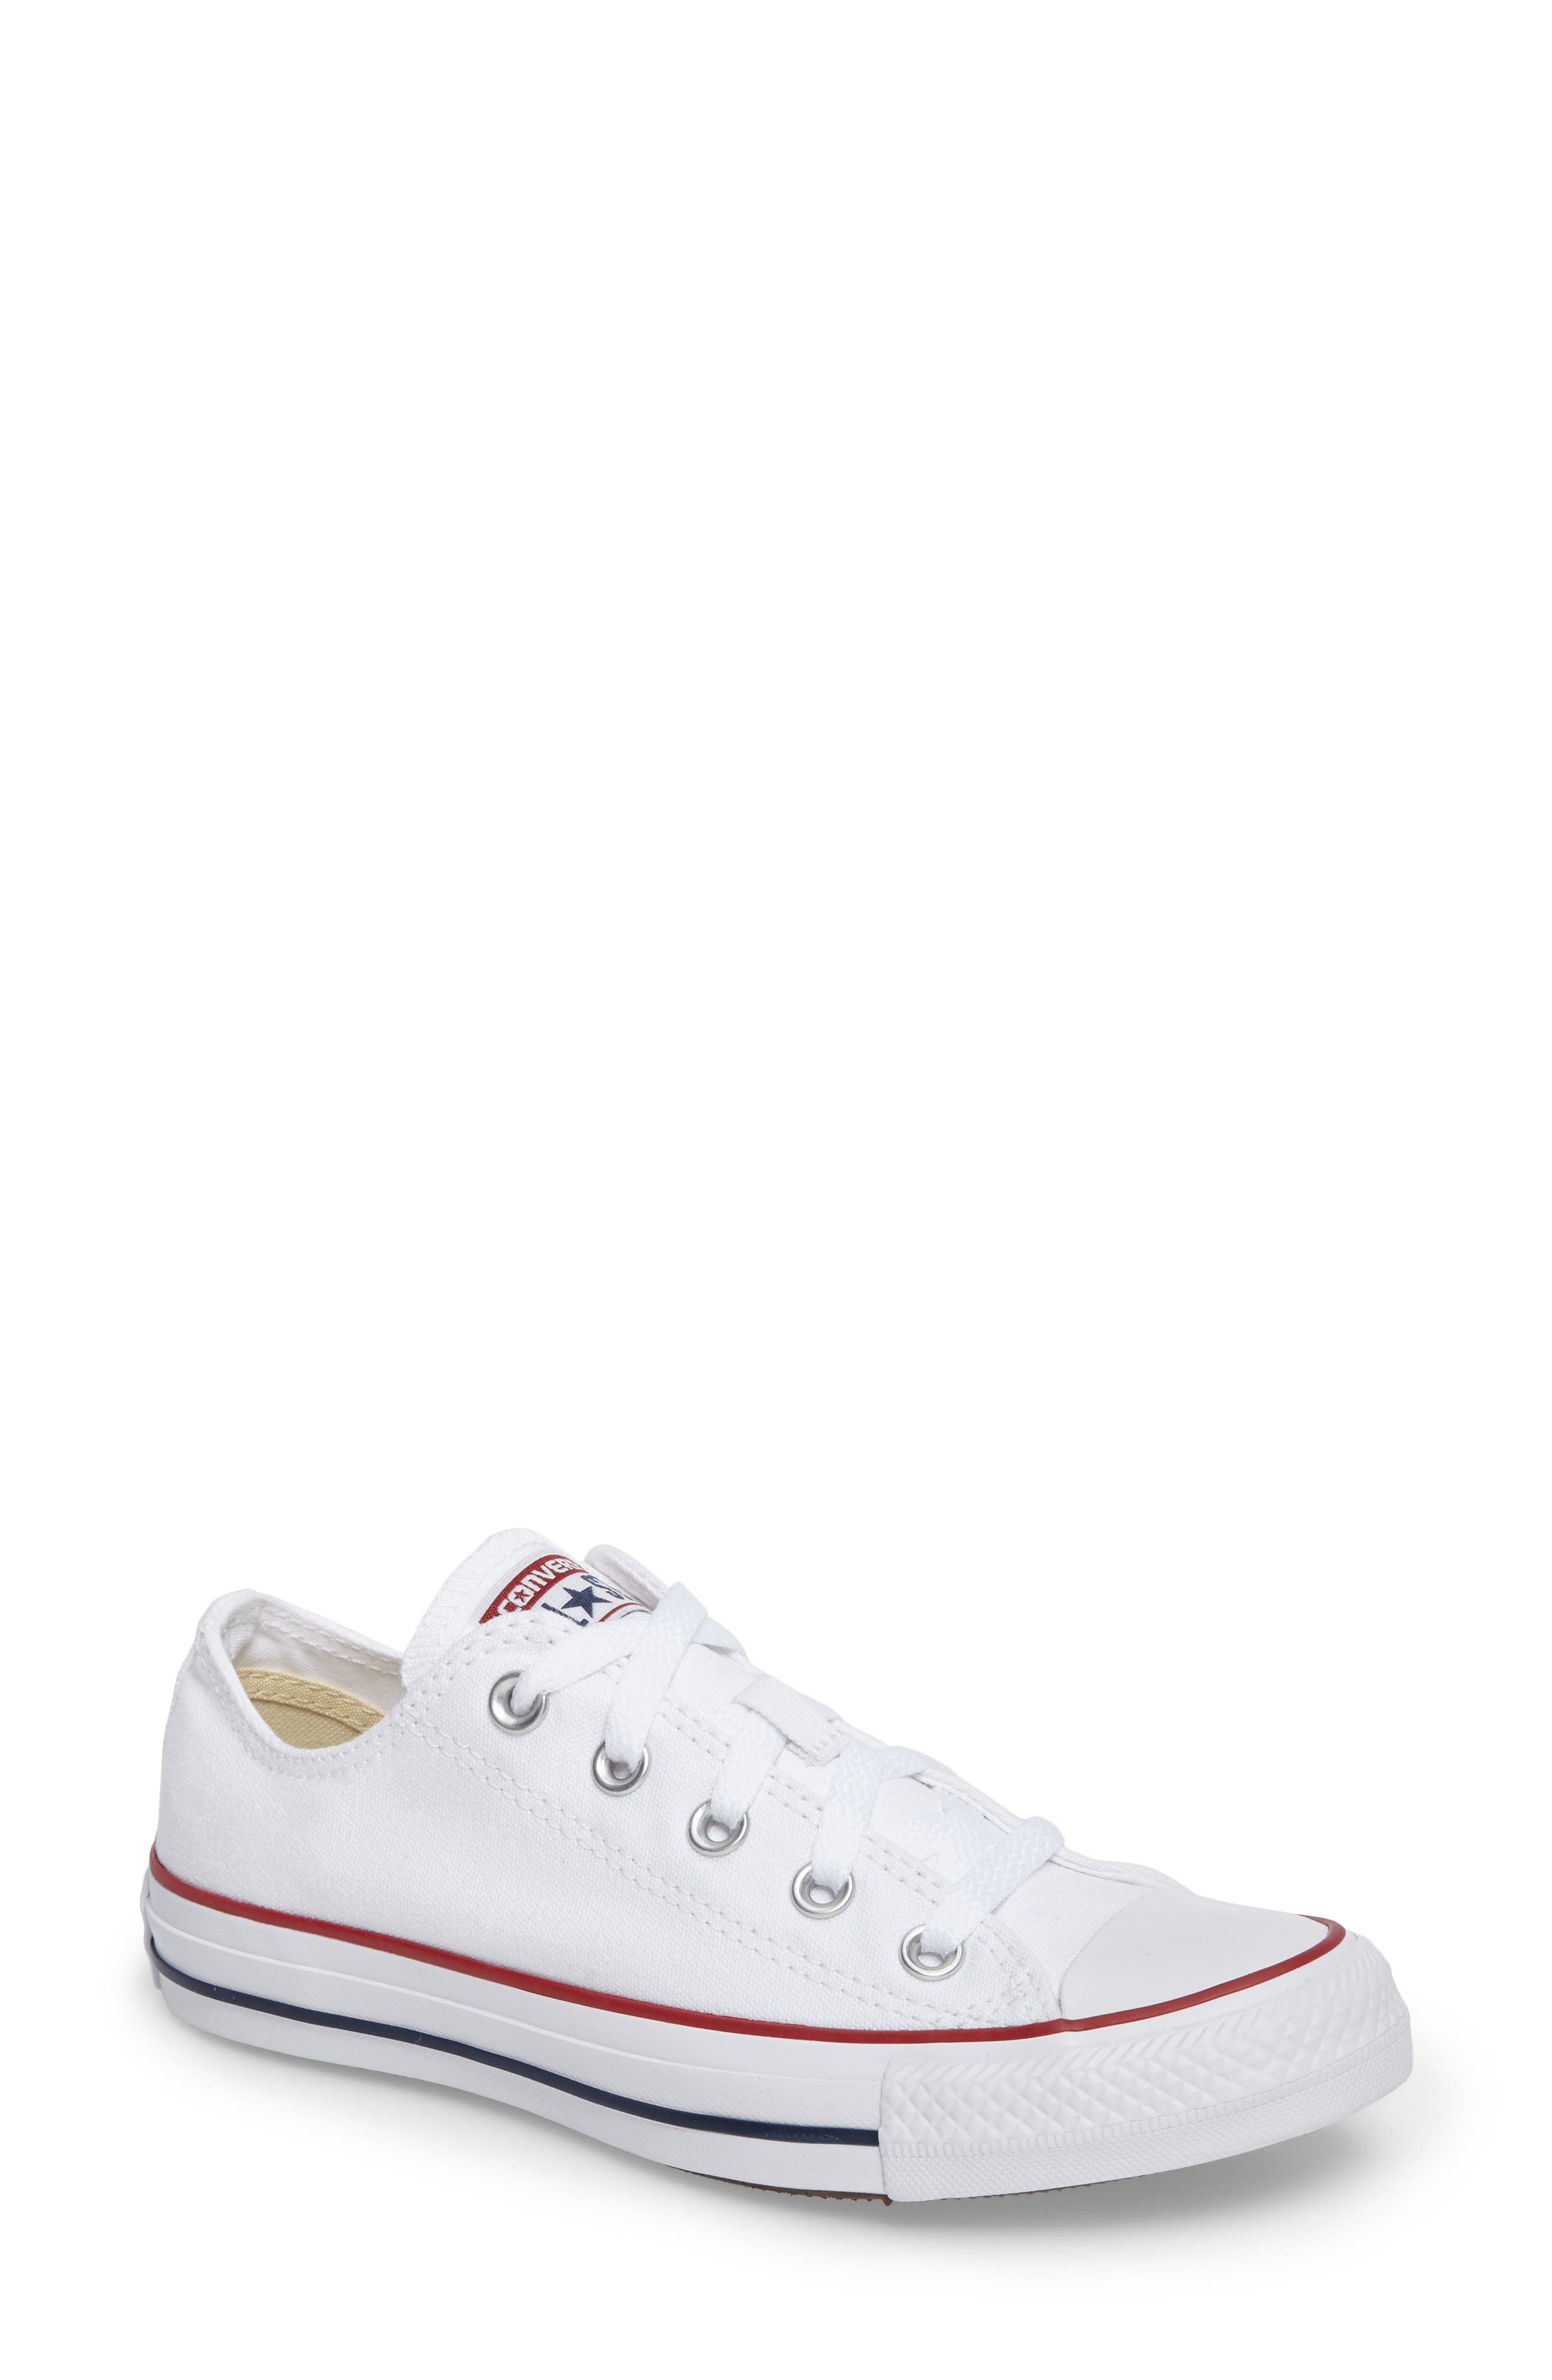 Chuck Taylor<sup>®</sup> Low Top Sneaker,                         Main,                         color, Optic White